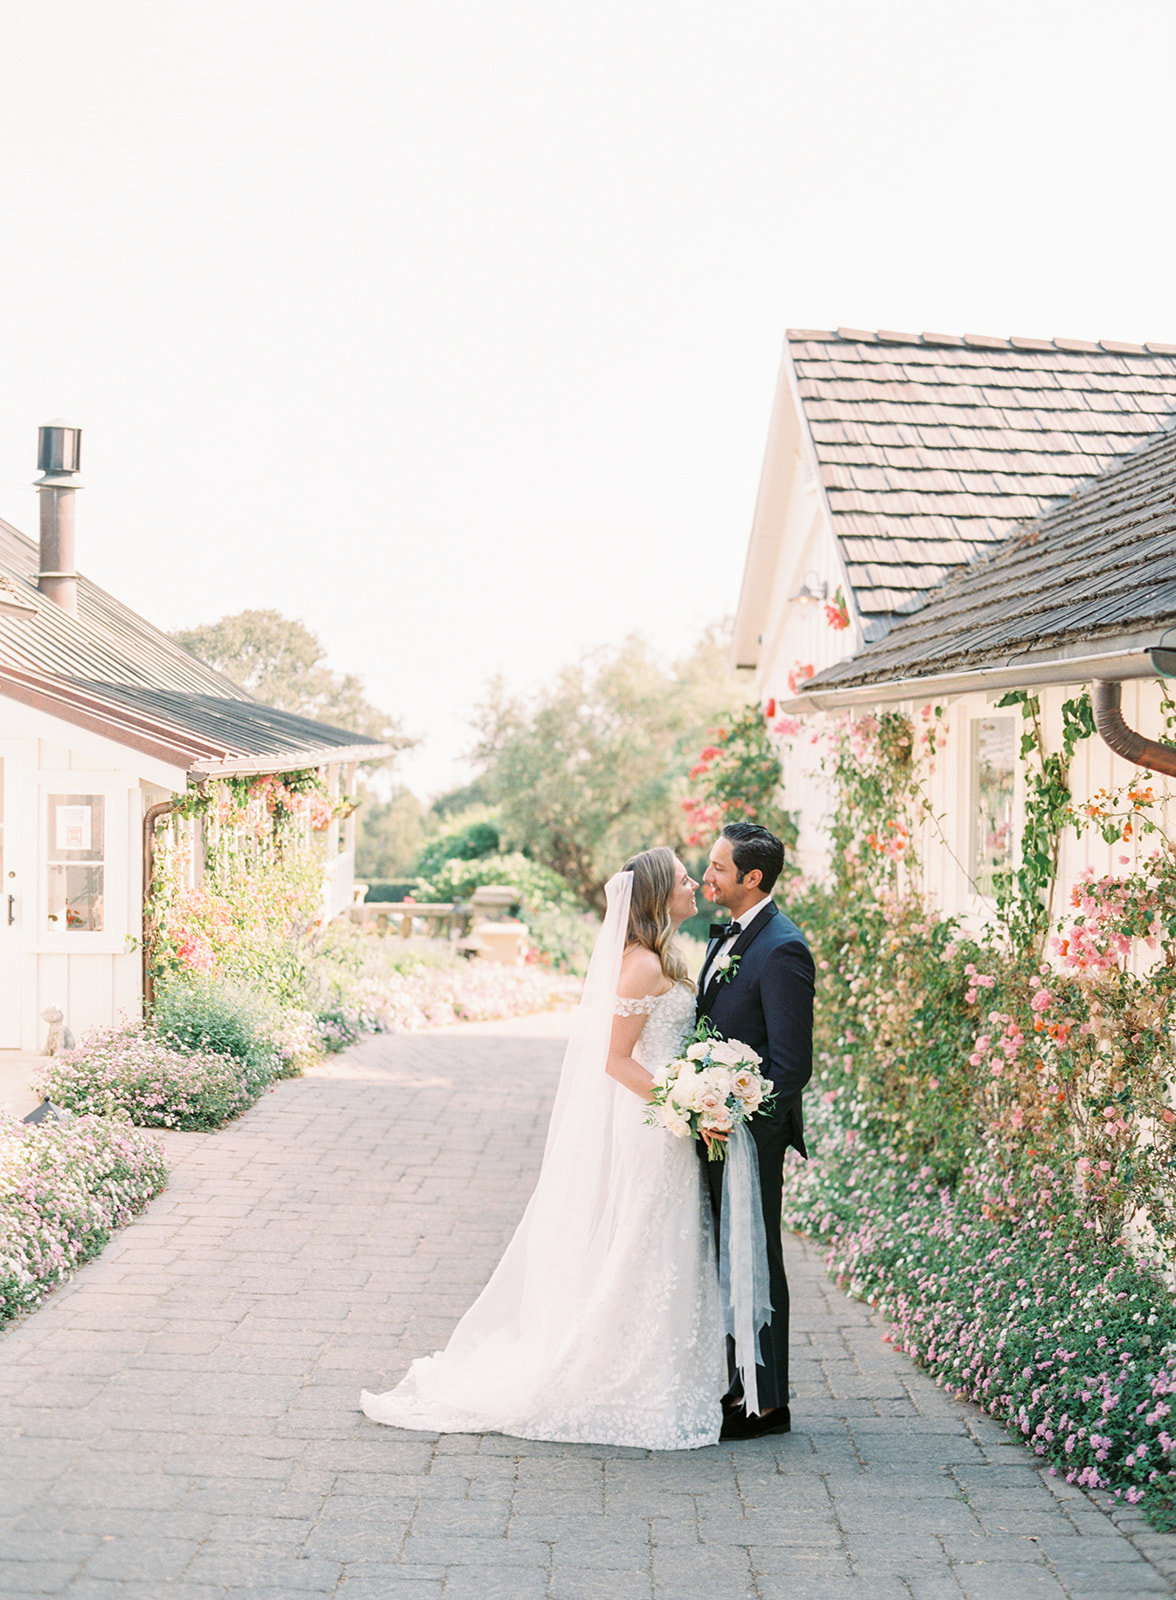 wedding portrait kiss on stone street with floral walled houses